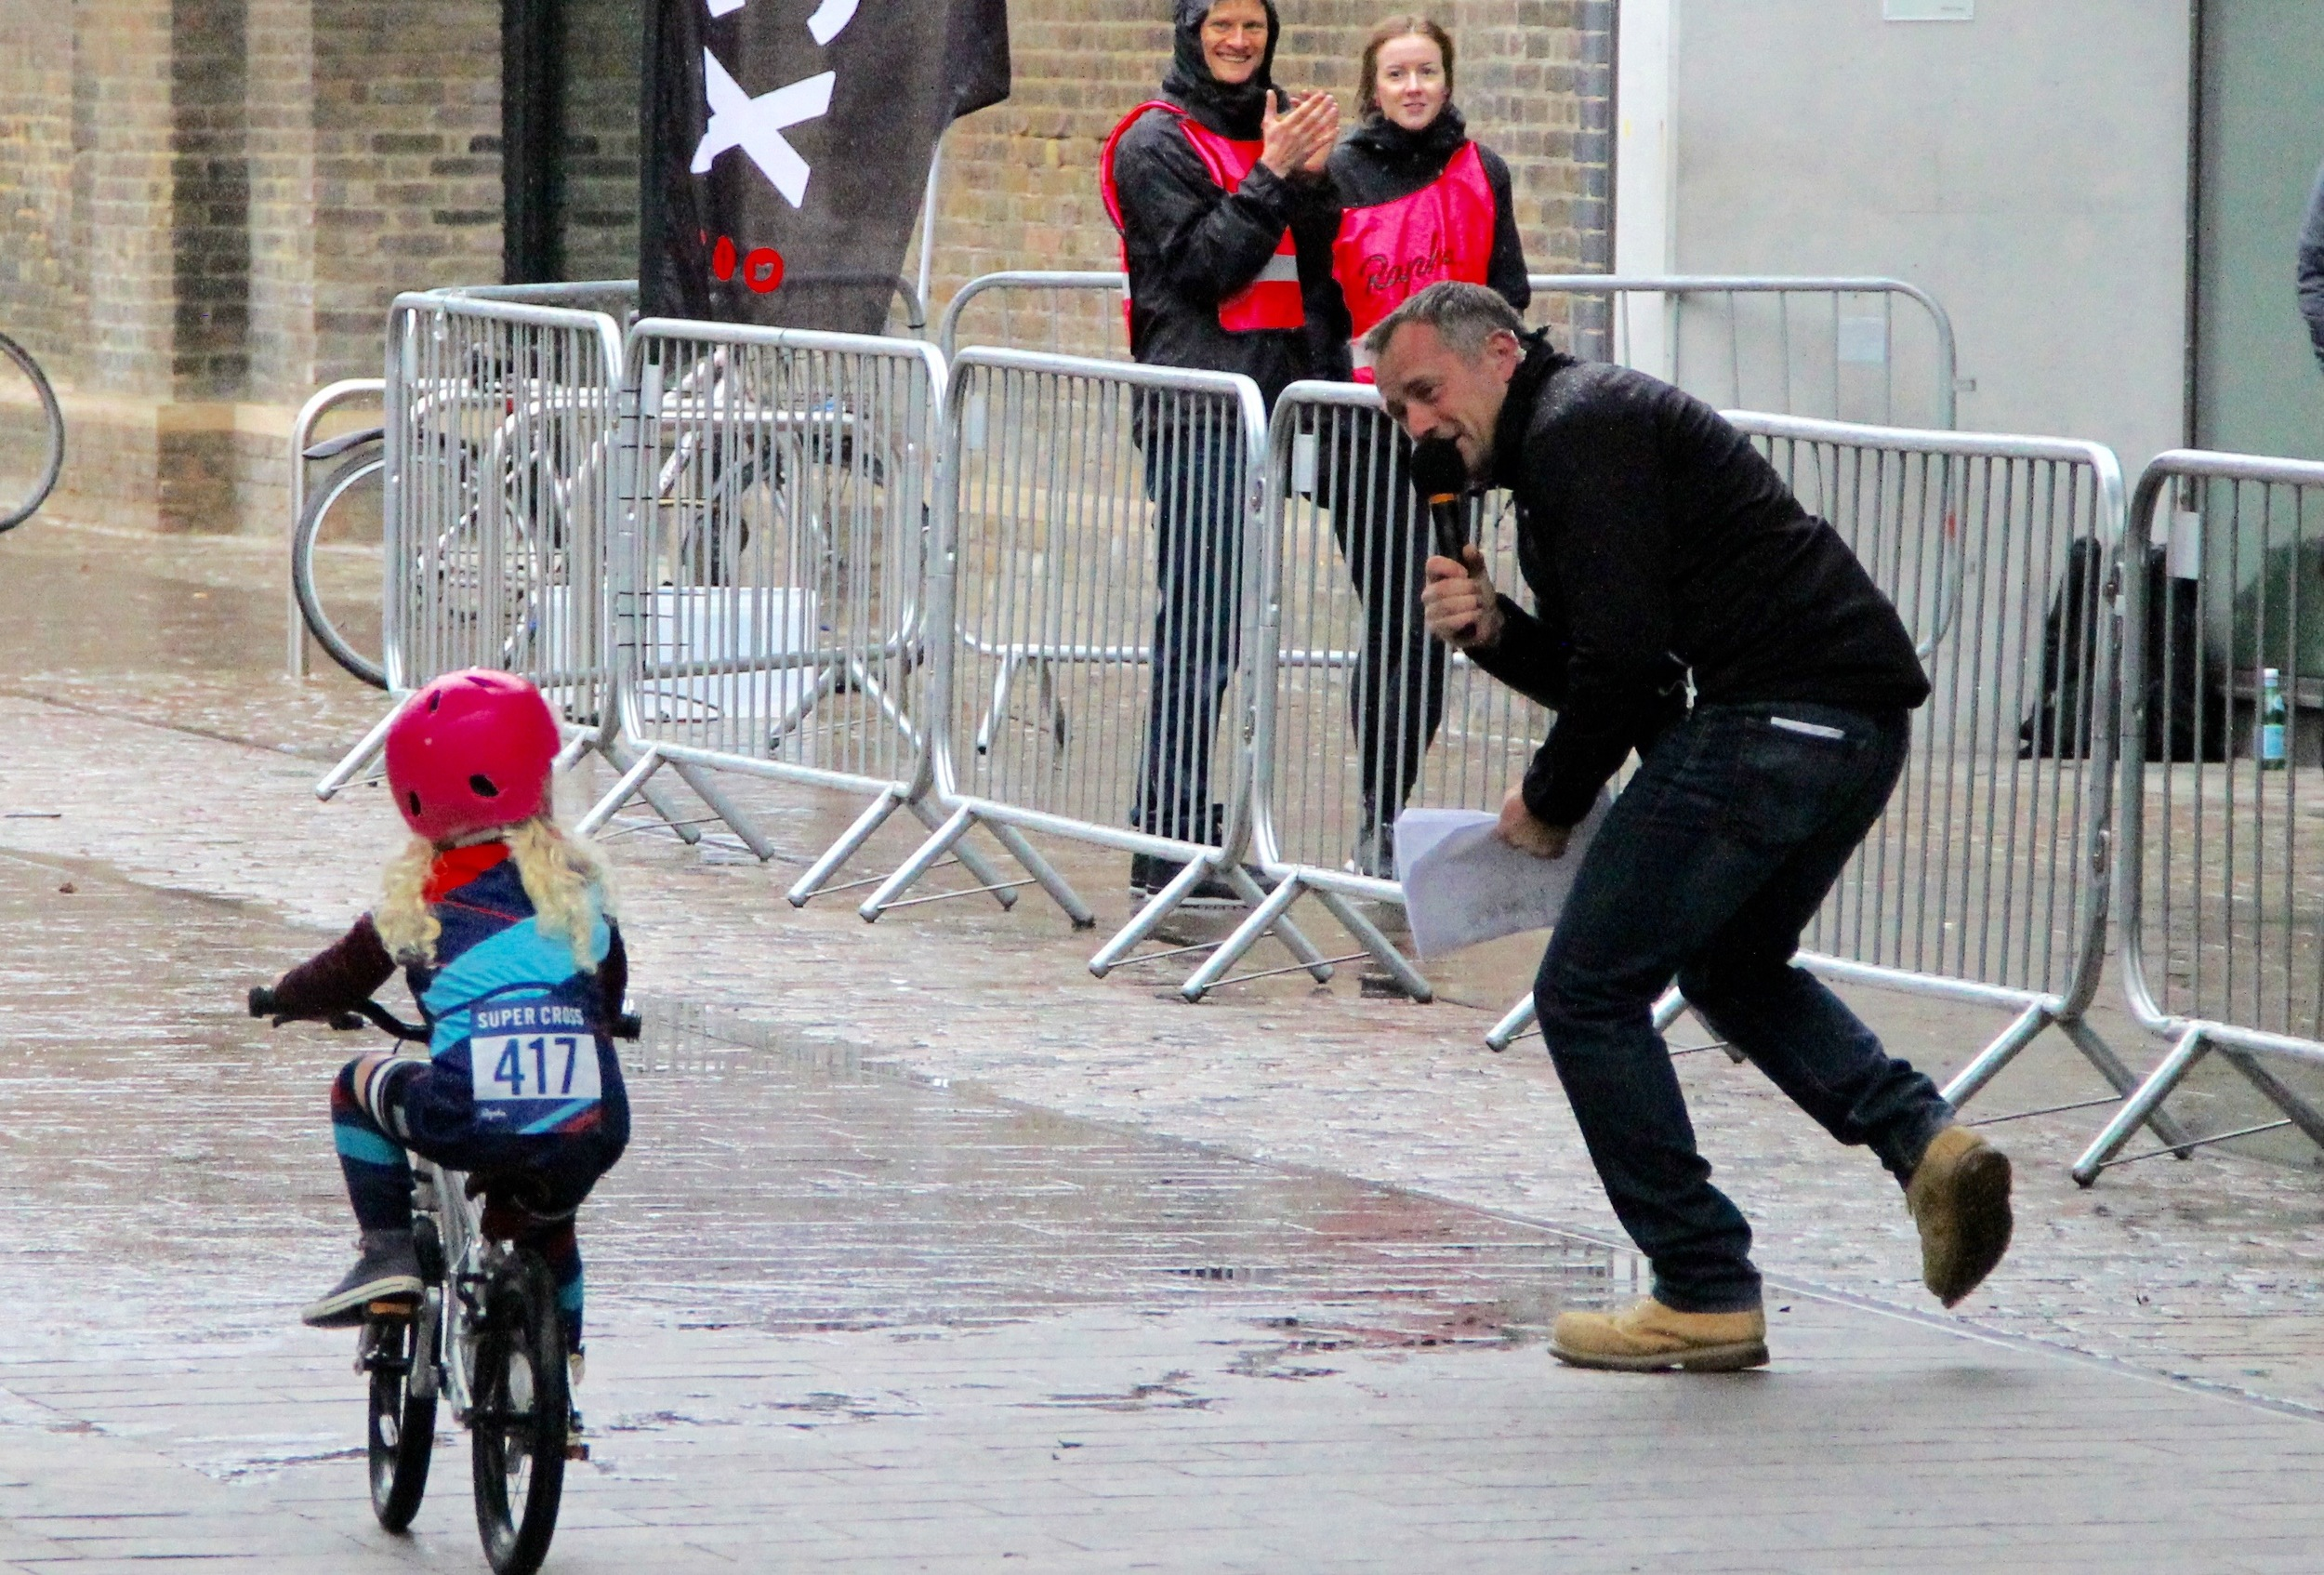 We loved the compere who cheered this tiny straggler through the finish line.